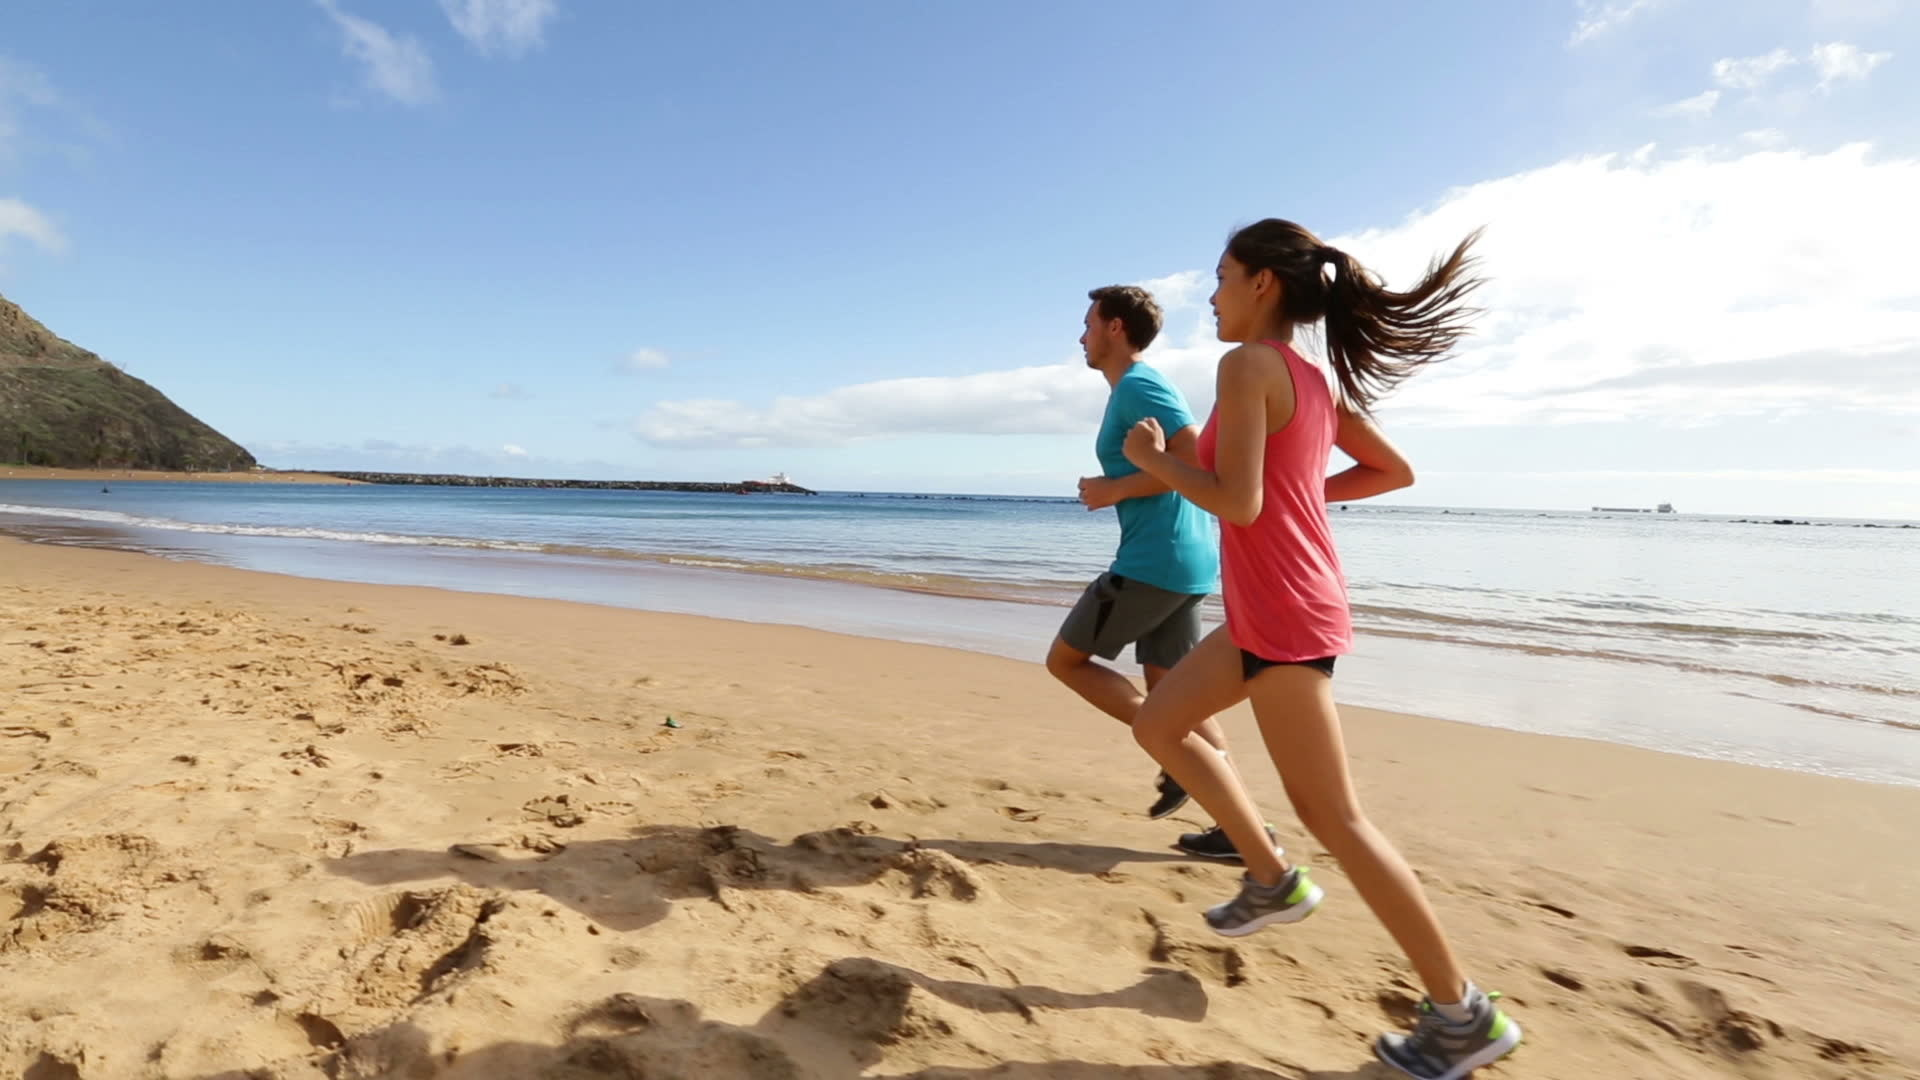 people-running-on-beach-jogging-widescreen-high-definition-wallpaper -for-desktop-background-download-jogging-images-free